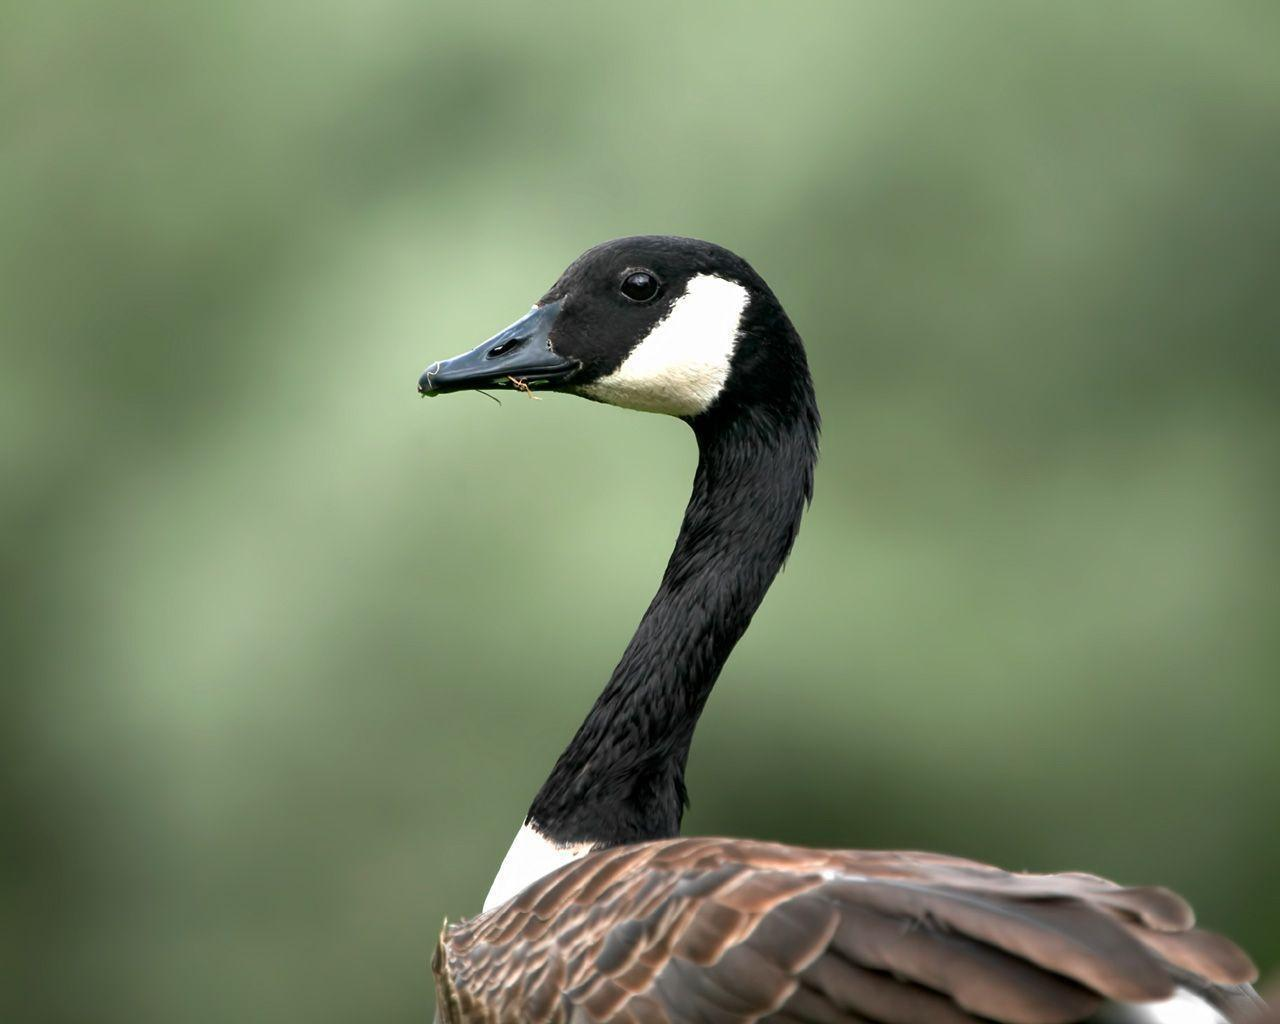 Geese Wallpapers - Wallpaper Cave